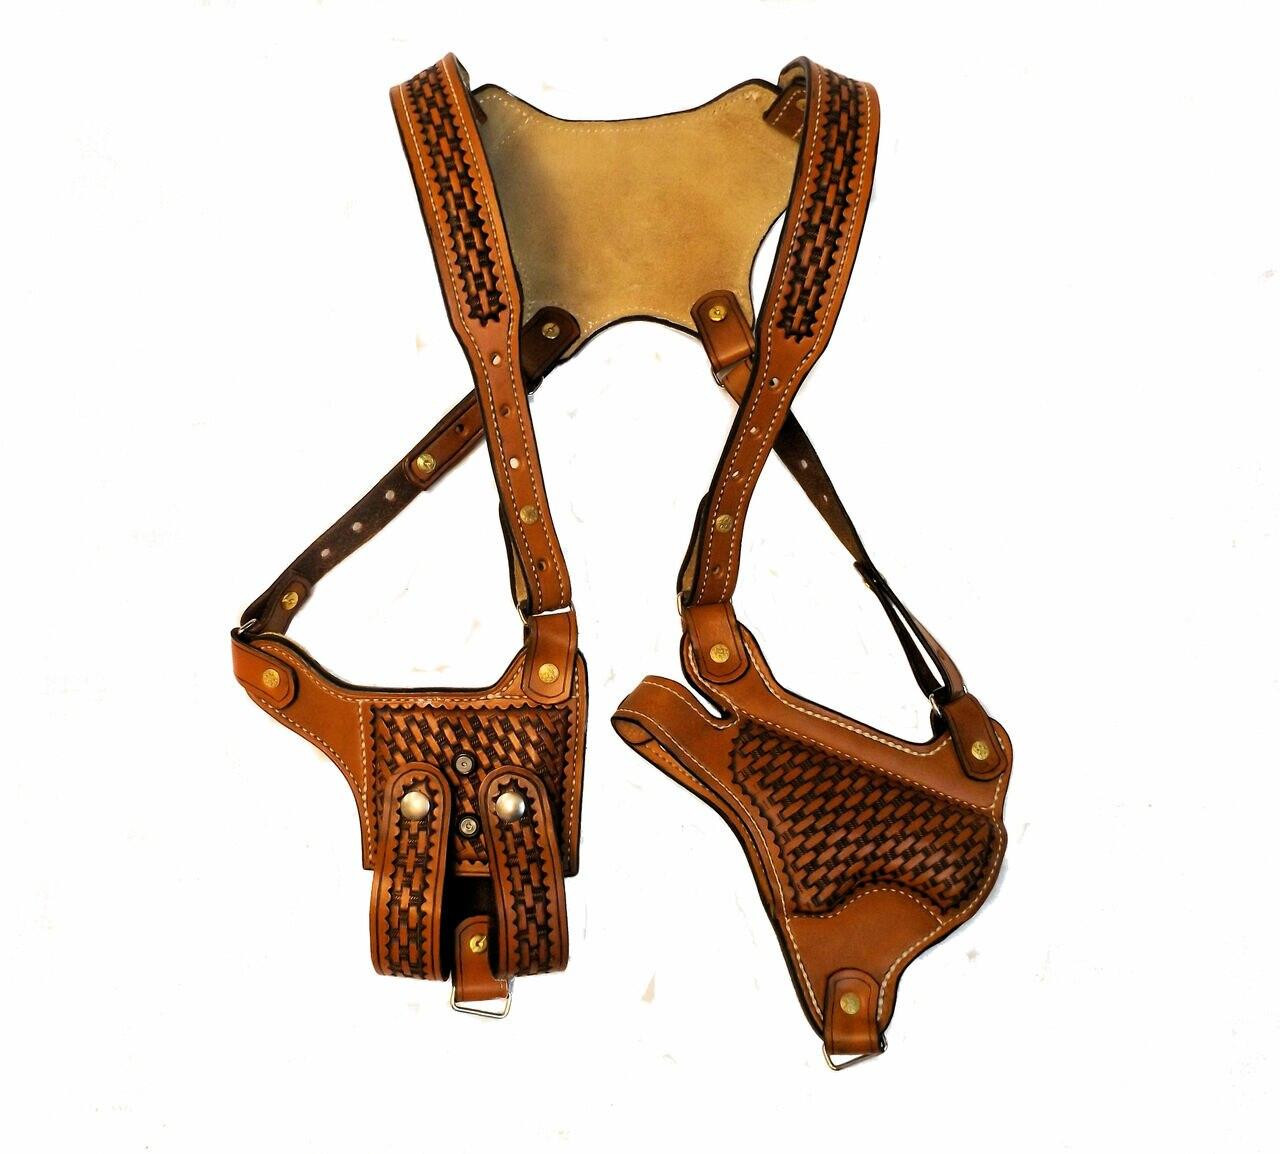 FRONT VIEW - This shoulder holster has basket weave stamping, is dyed saddle tan w/double magazine pouch, adjustable belt clips and has a large adjustment range. The width of the back plate is designed to keep the straps from rubbing your neck. It is suede lined for comfort and to help wick away sweat. Many other color and tooling options are available.